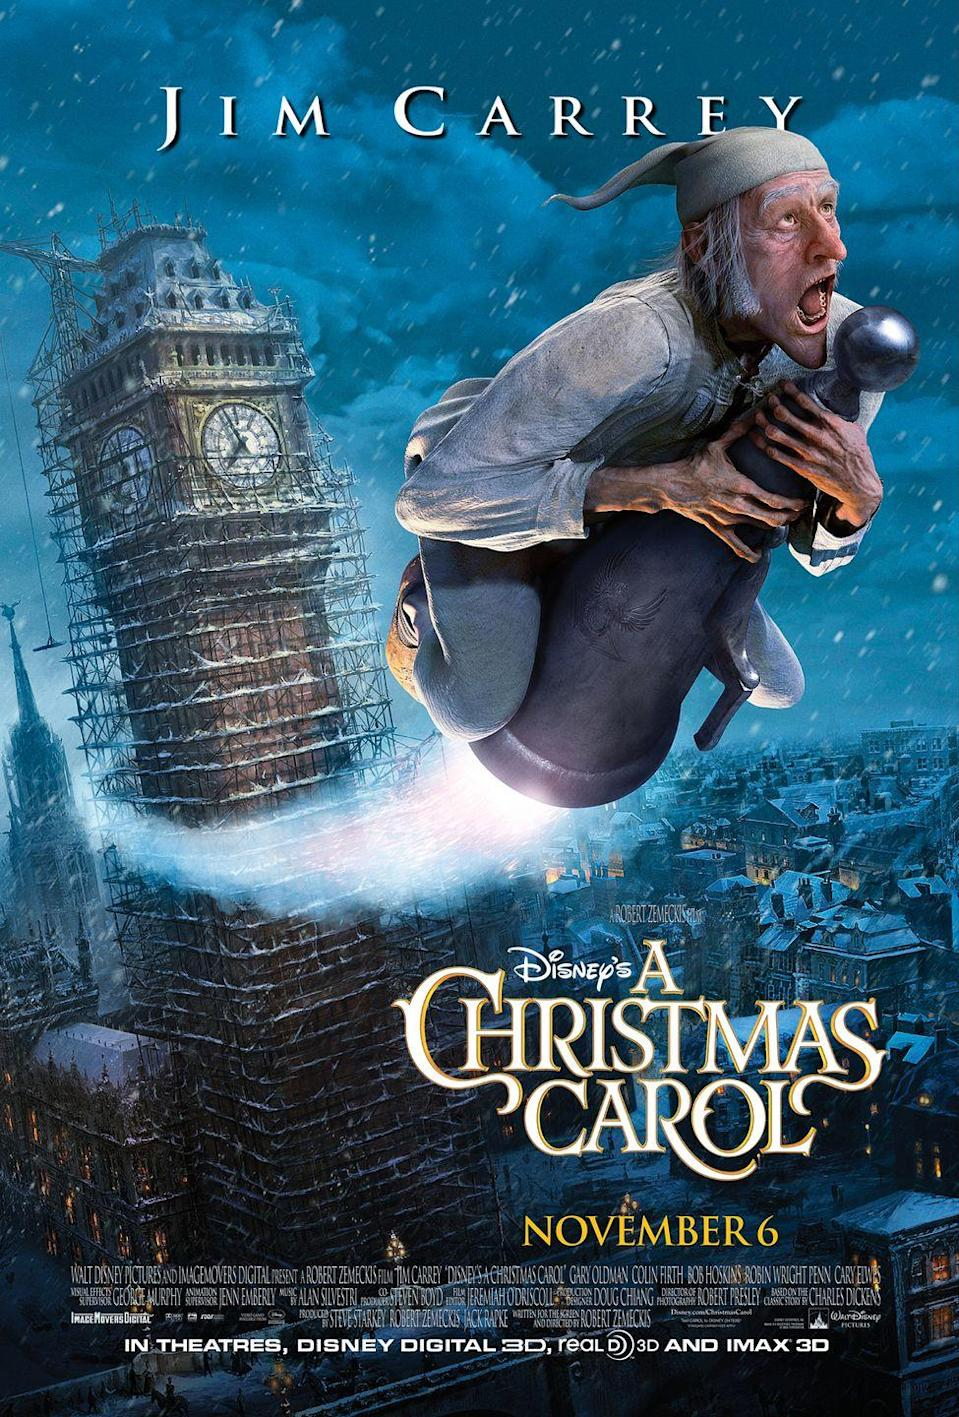 """<p>A must-watch for the entire family, Disney's animated take on the classic Charles Dickens story offers a unique visual experience (and also stars Jim Carrey as Scrooge and in multiple other roles!).<br></p><p><a class=""""link rapid-noclick-resp"""" href=""""https://www.amazon.com/Disneys-Christmas-Carol-Jim-Carrey/dp/B004EK926K?tag=syn-yahoo-20&ascsubtag=%5Bartid%7C10055.g.1315%5Bsrc%7Cyahoo-us"""" rel=""""nofollow noopener"""" target=""""_blank"""" data-ylk=""""slk:WATCH NOW"""">WATCH NOW</a></p><p><strong>RELATED: </strong><a href=""""https://www.goodhousekeeping.com/holidays/christmas-ideas/g23601545/christmas-traditions-kids-family/"""" rel=""""nofollow noopener"""" target=""""_blank"""" data-ylk=""""slk:20 Easy Christmas Traditions to Start With Your Family"""" class=""""link rapid-noclick-resp"""">20 Easy Christmas Traditions to Start With Your Family</a></p>"""